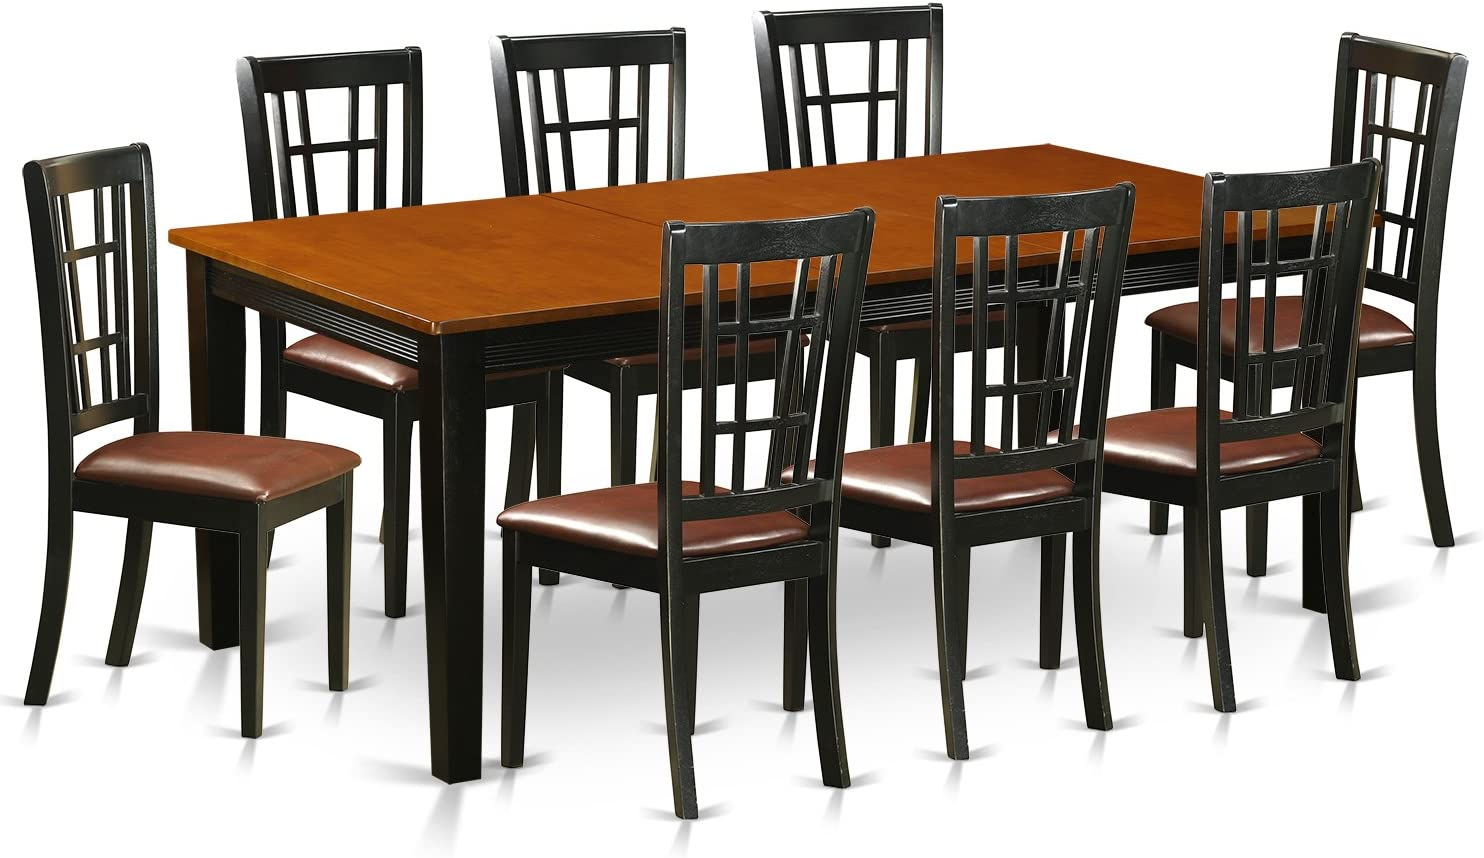 QUNI9-BCH-LC 9 PC Dining set-Dining Table with 8 Wood Dining Chairs